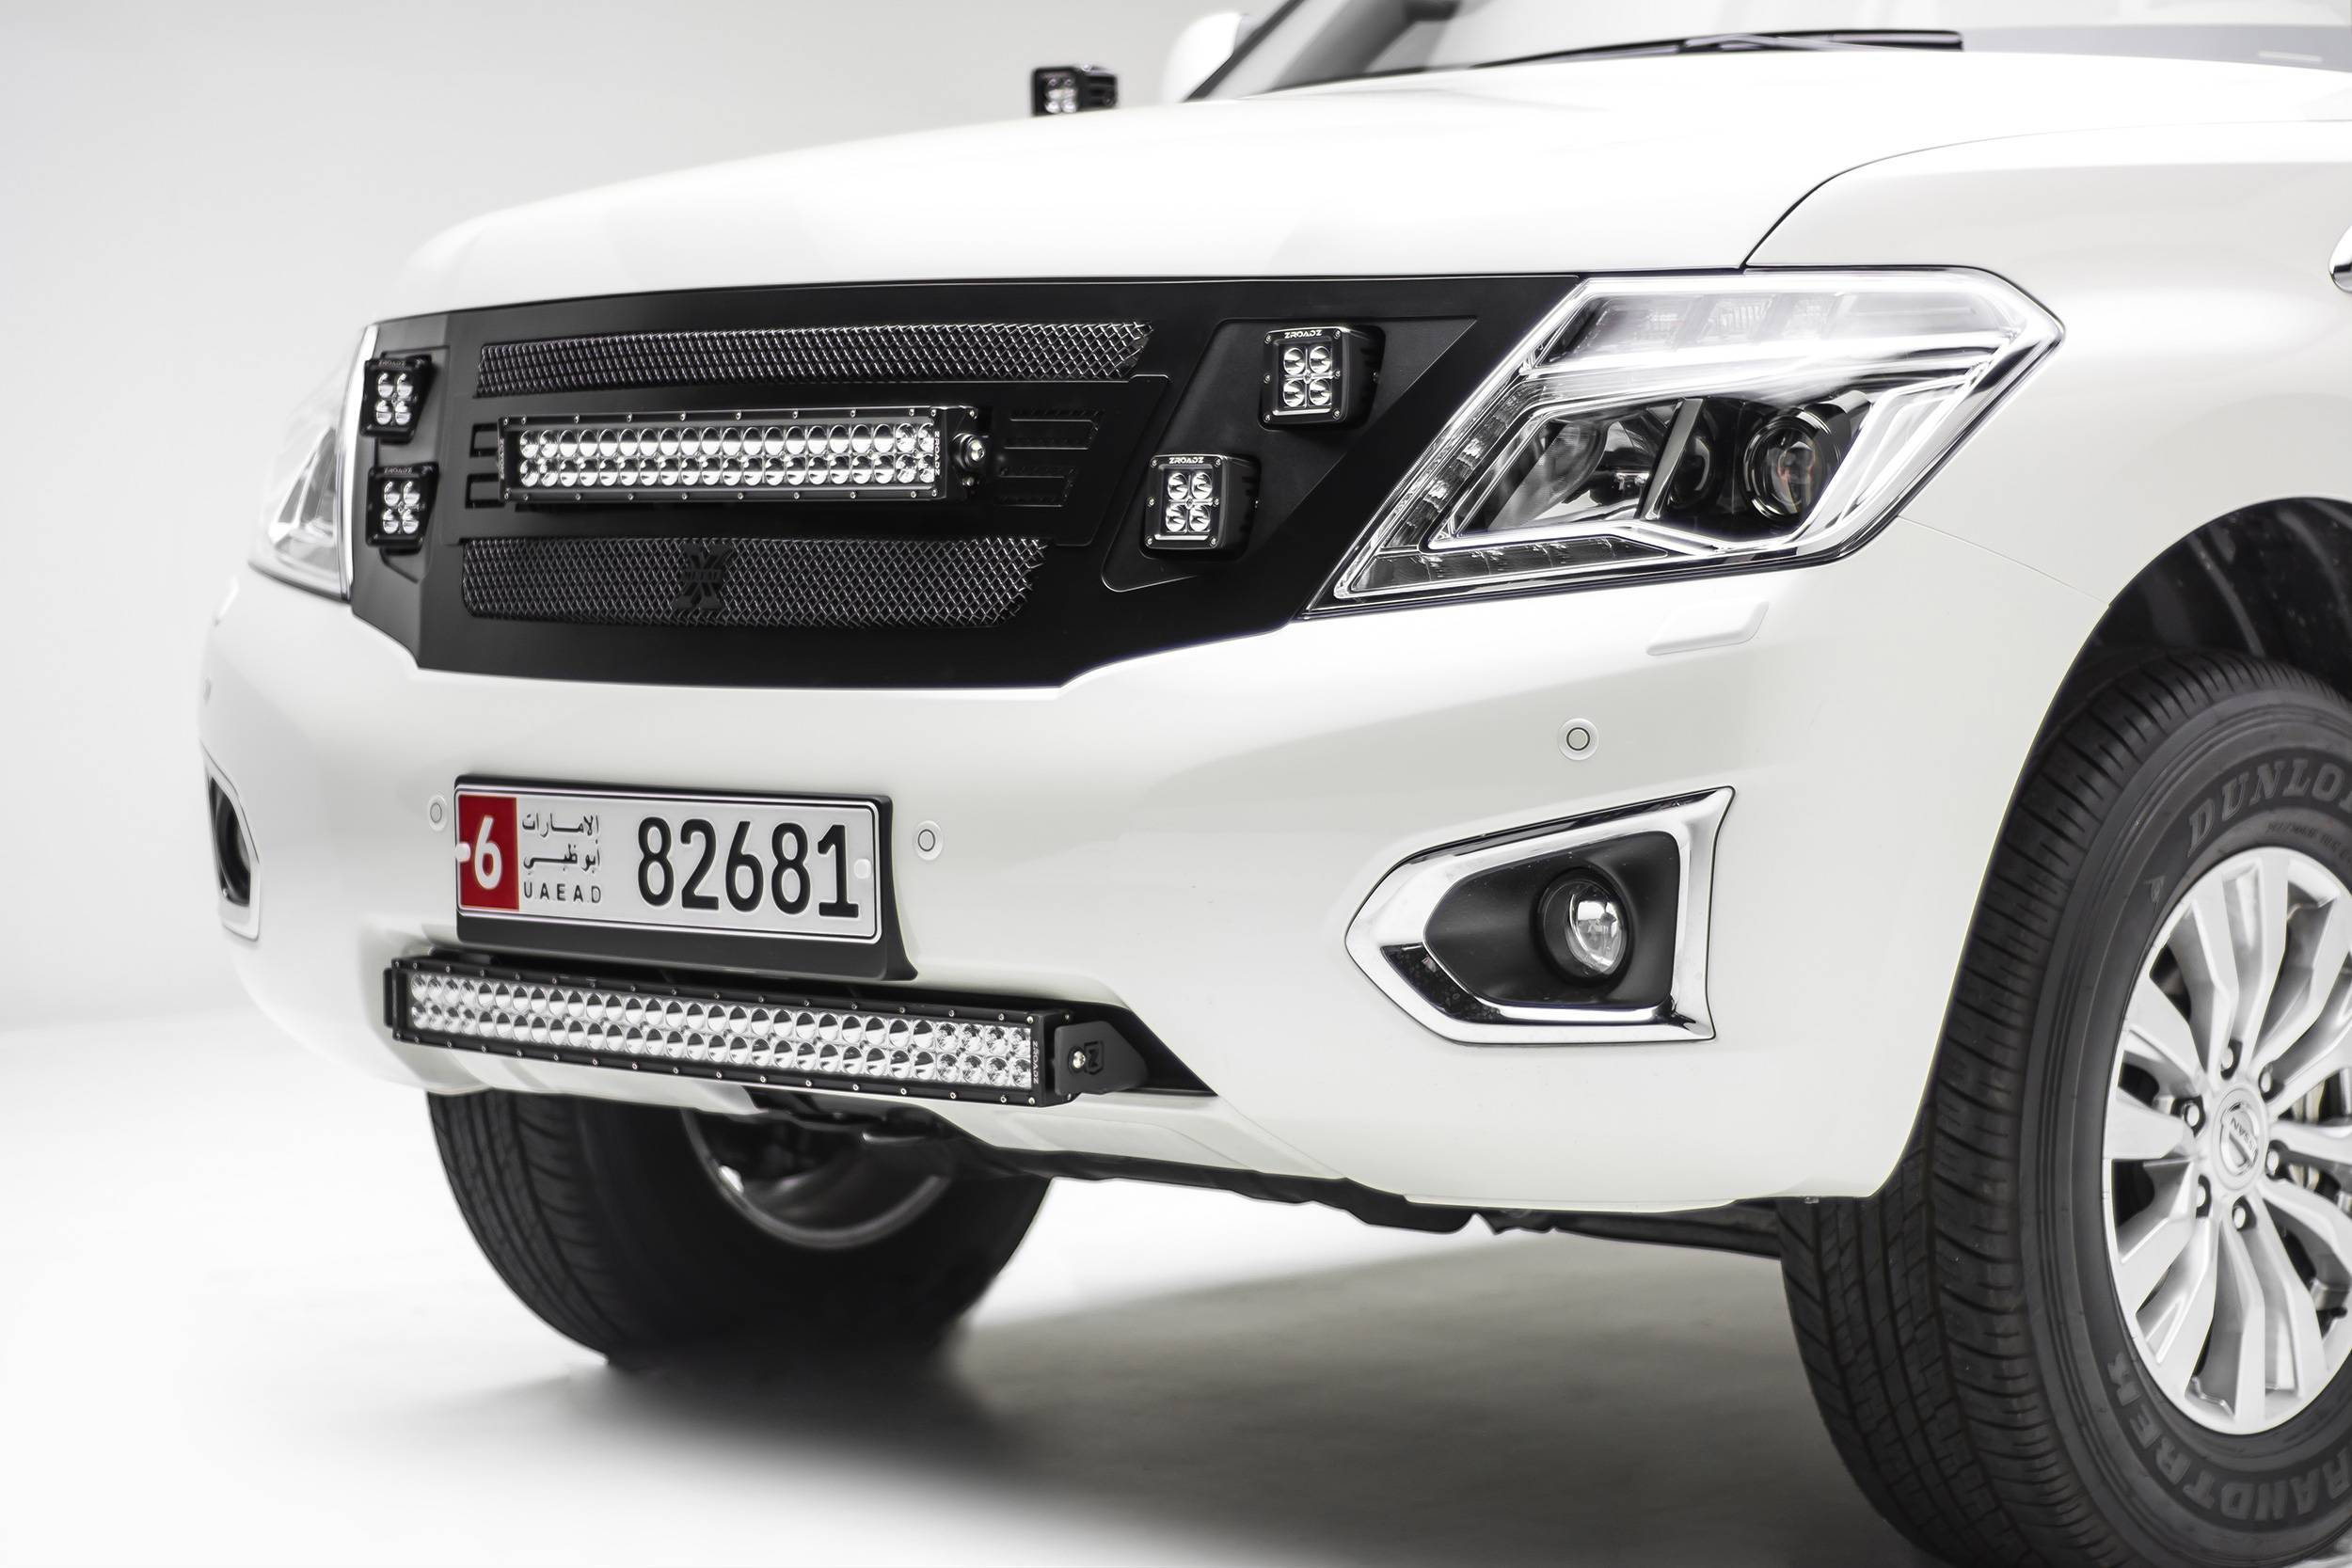 ZROADZ - 2010-2017 Nissan Patrol Y62 Front Bumper Center LED Bracket to mount 30 Inch LED Light Bar - PN #Z327871